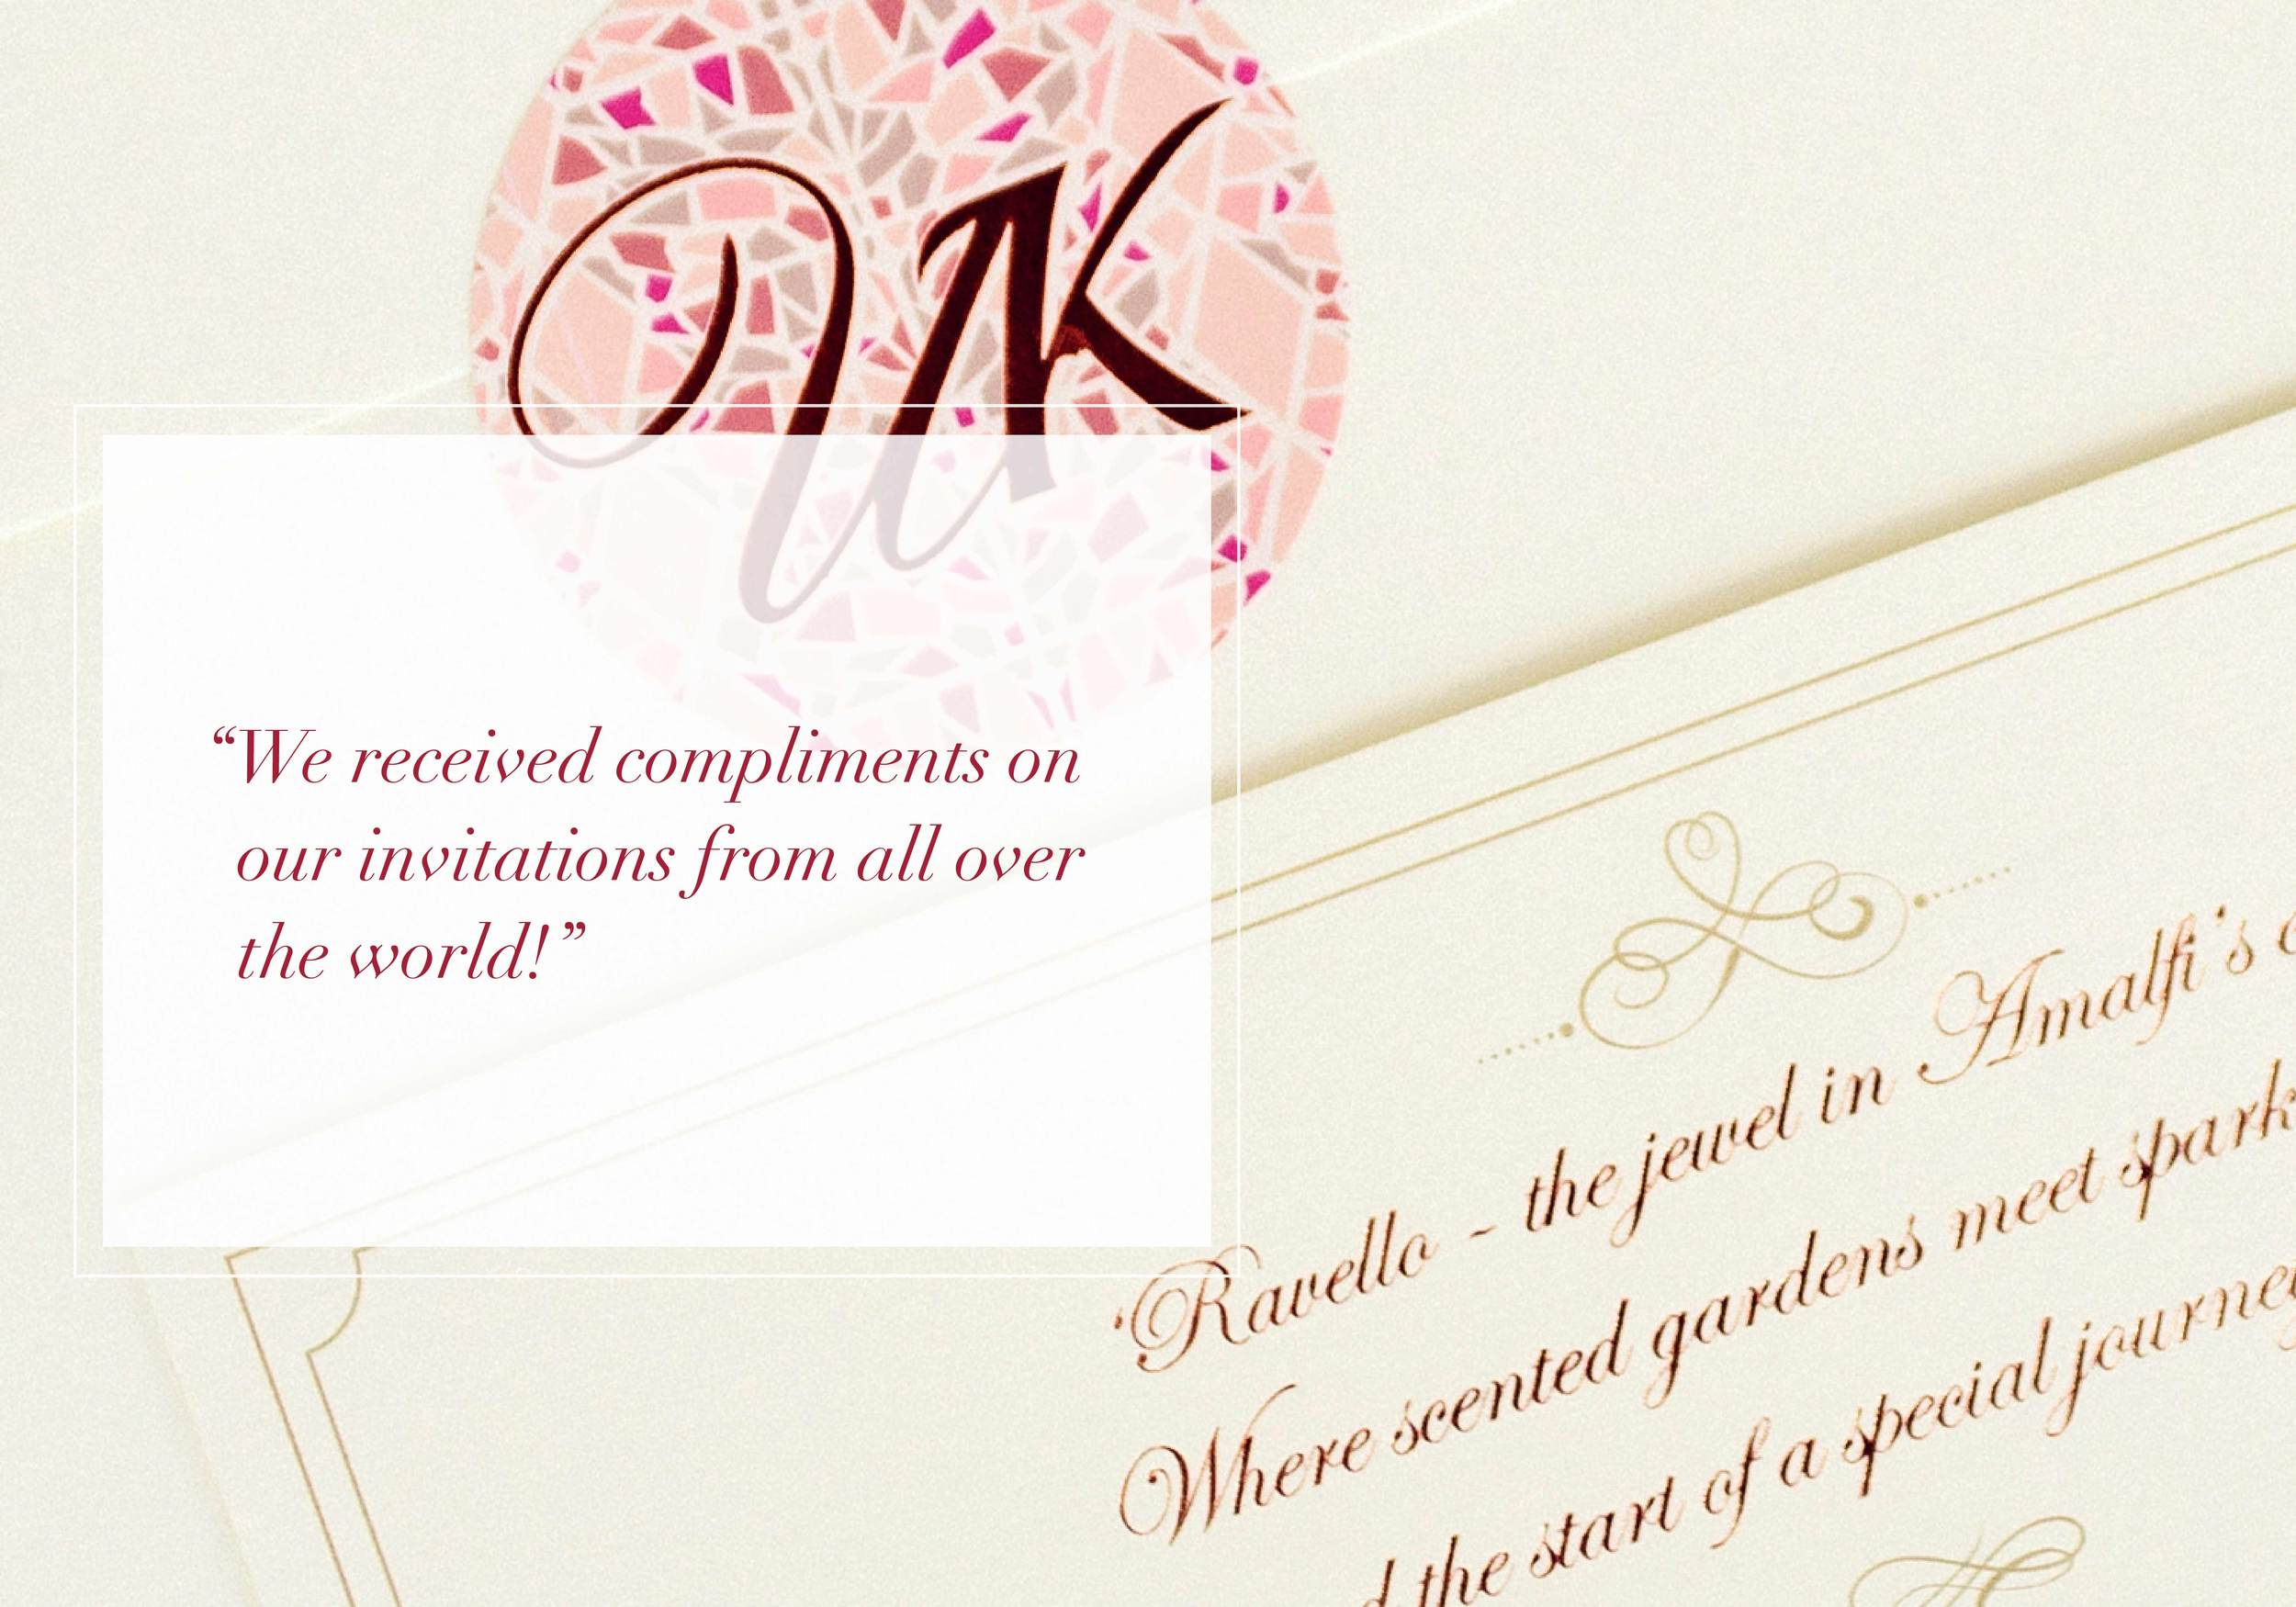 ananya-banner-wedding-event-stationery-05.jpg